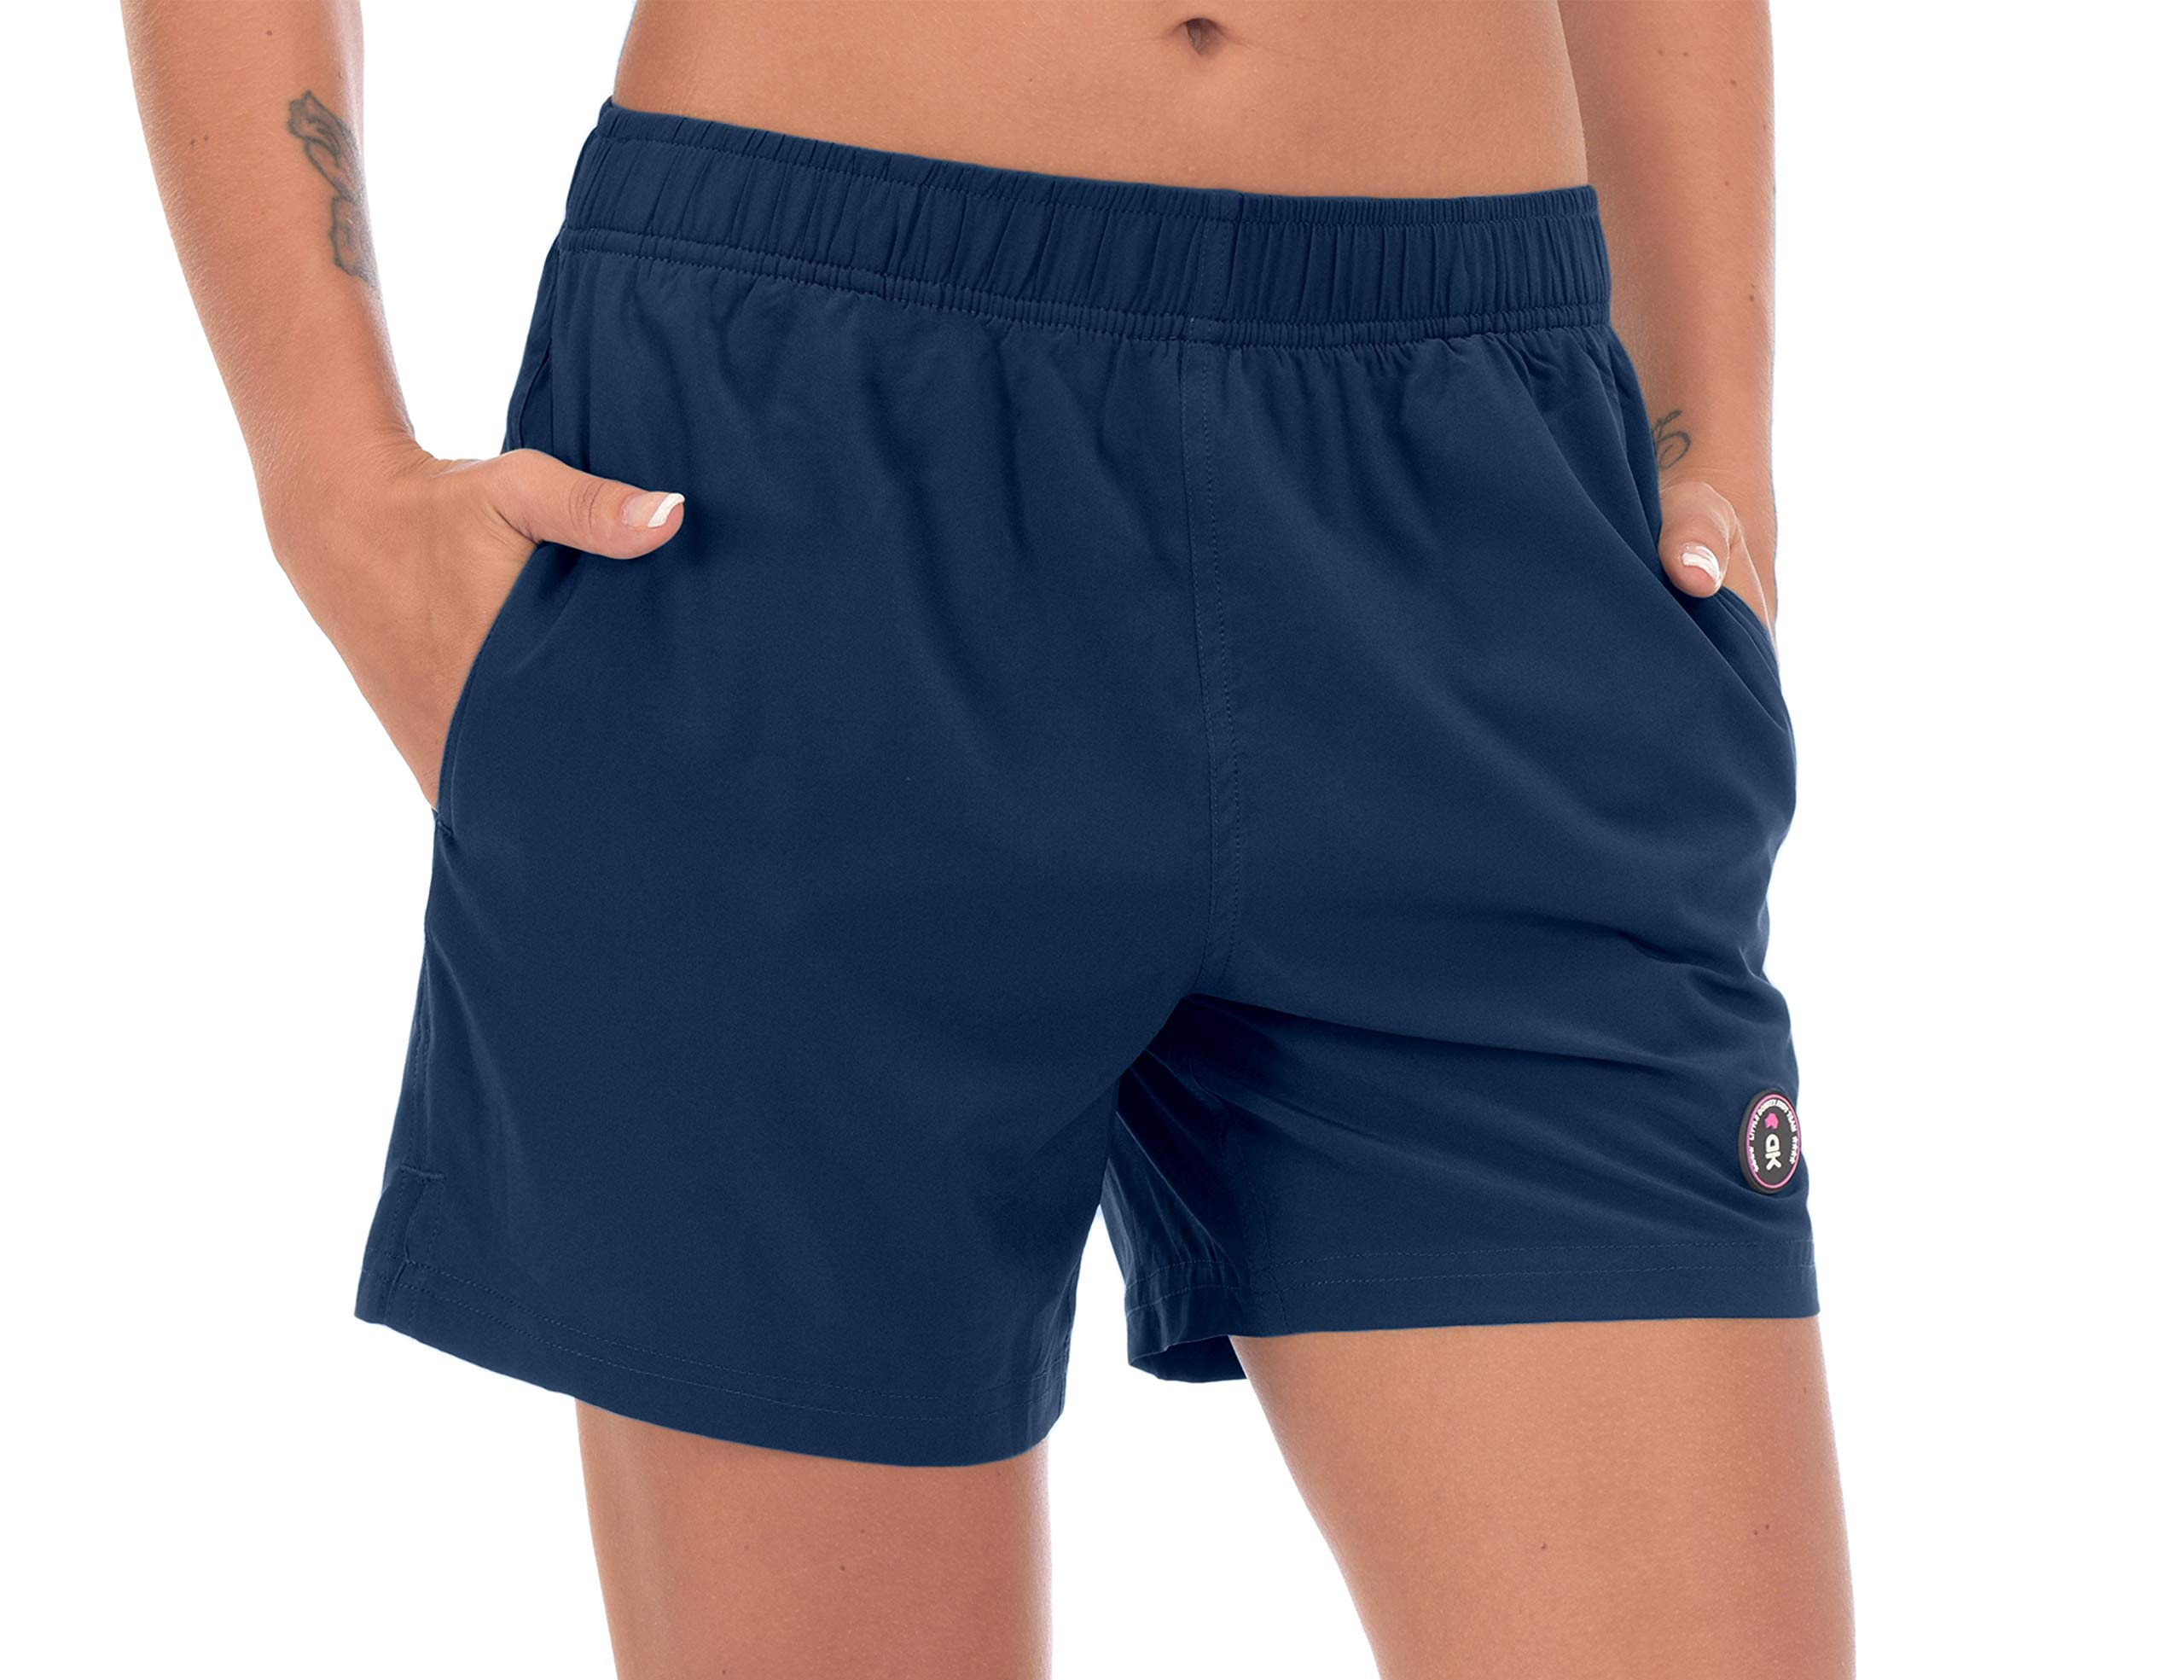 Little Donkey Andy Women's Running Shorts Lightweight Athletic Workout Shorts with Liner & Pockets Blue XL